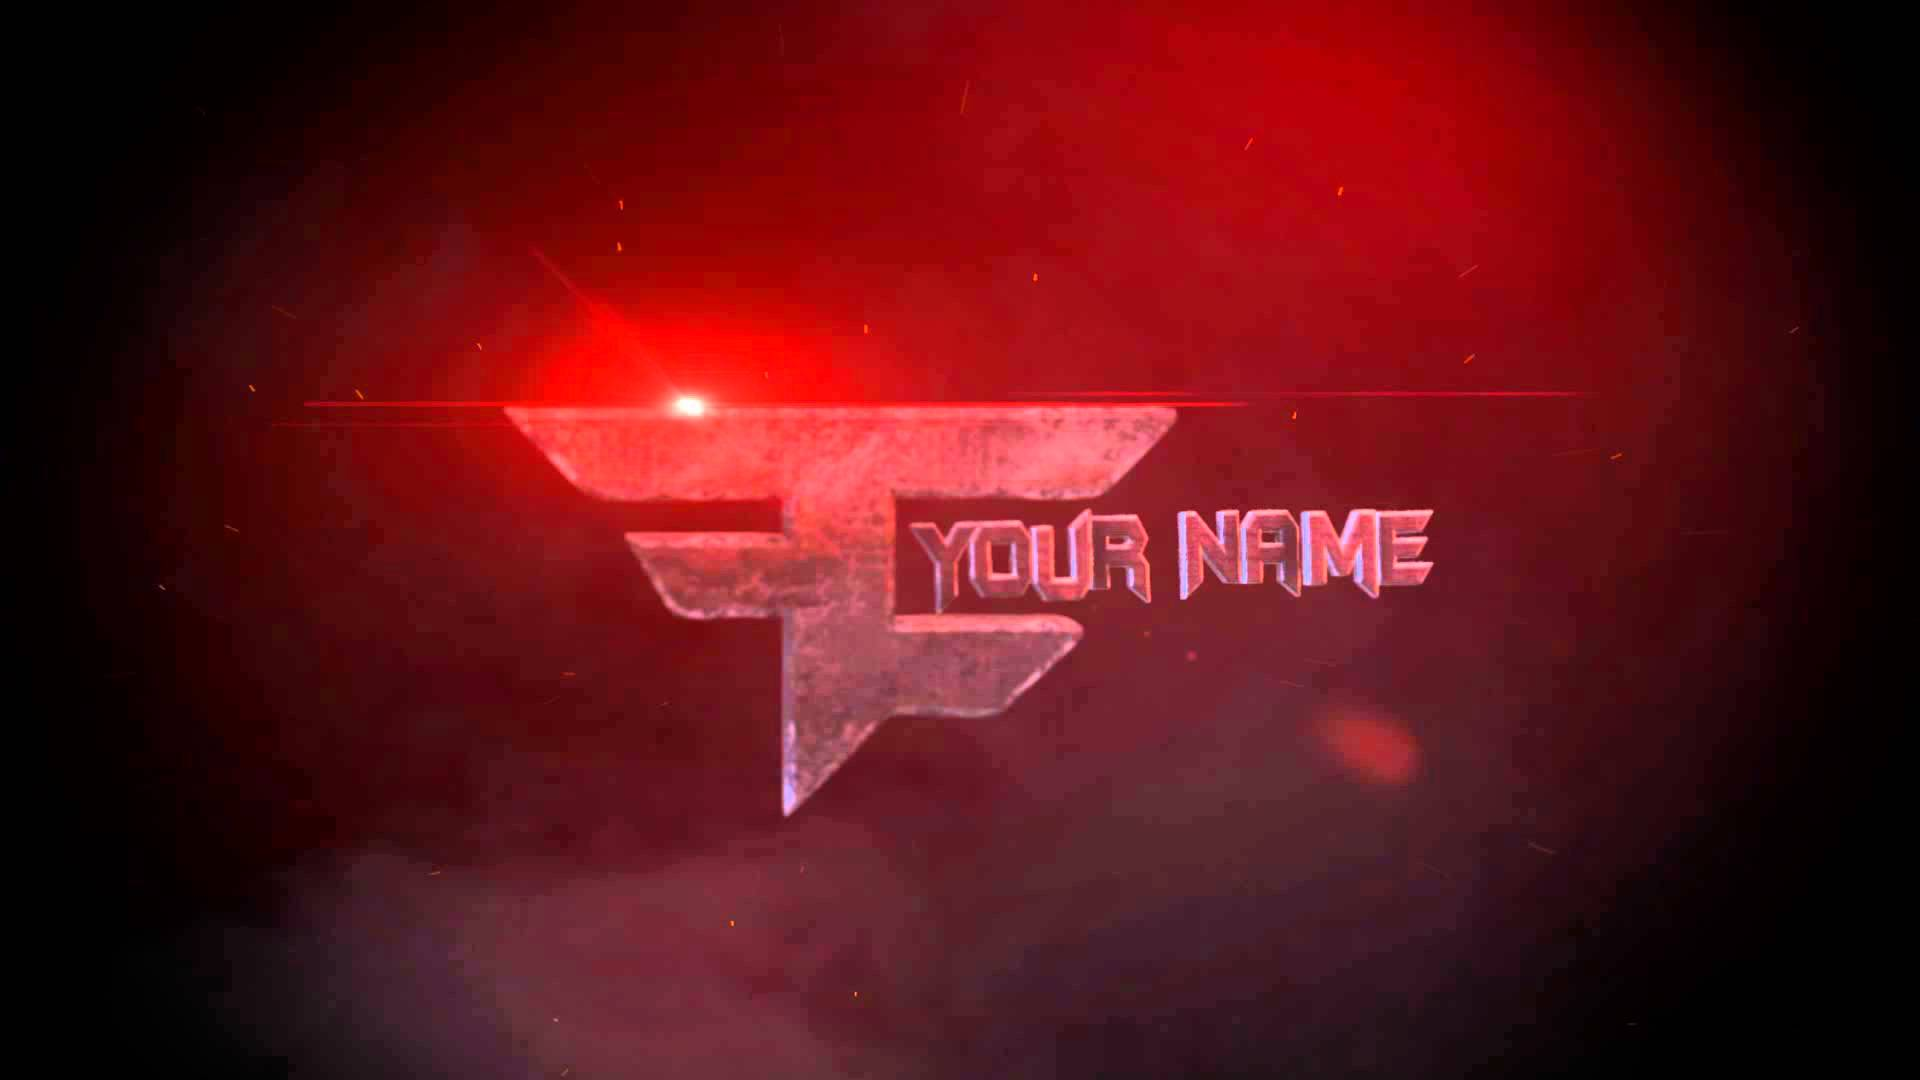 19/05/2018, FaZe Computer Wallpapers